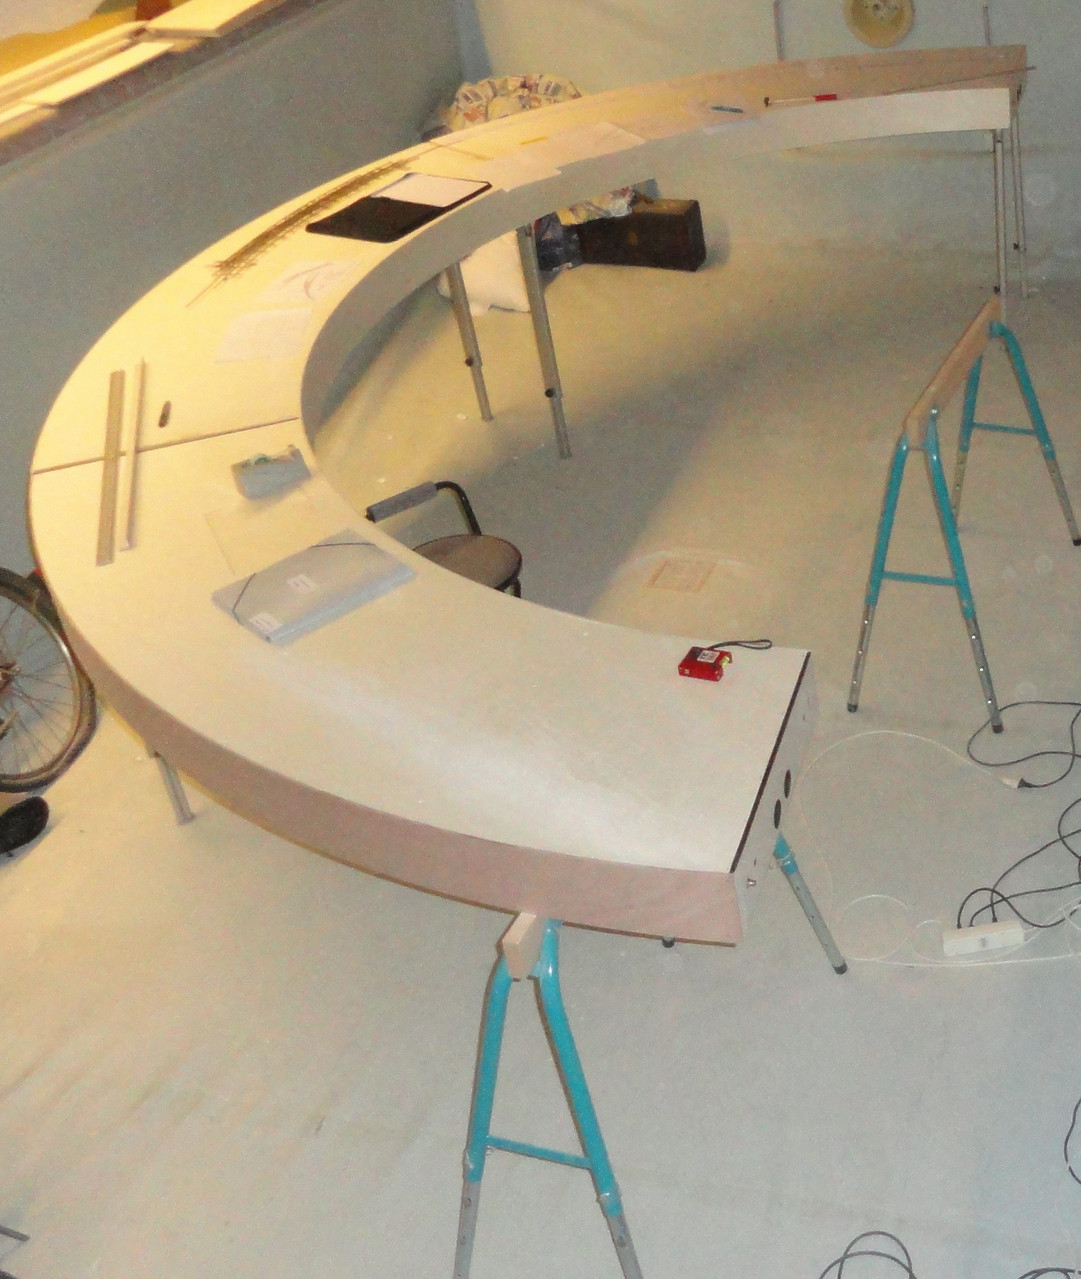 Module construction. 1 curved section assembled.